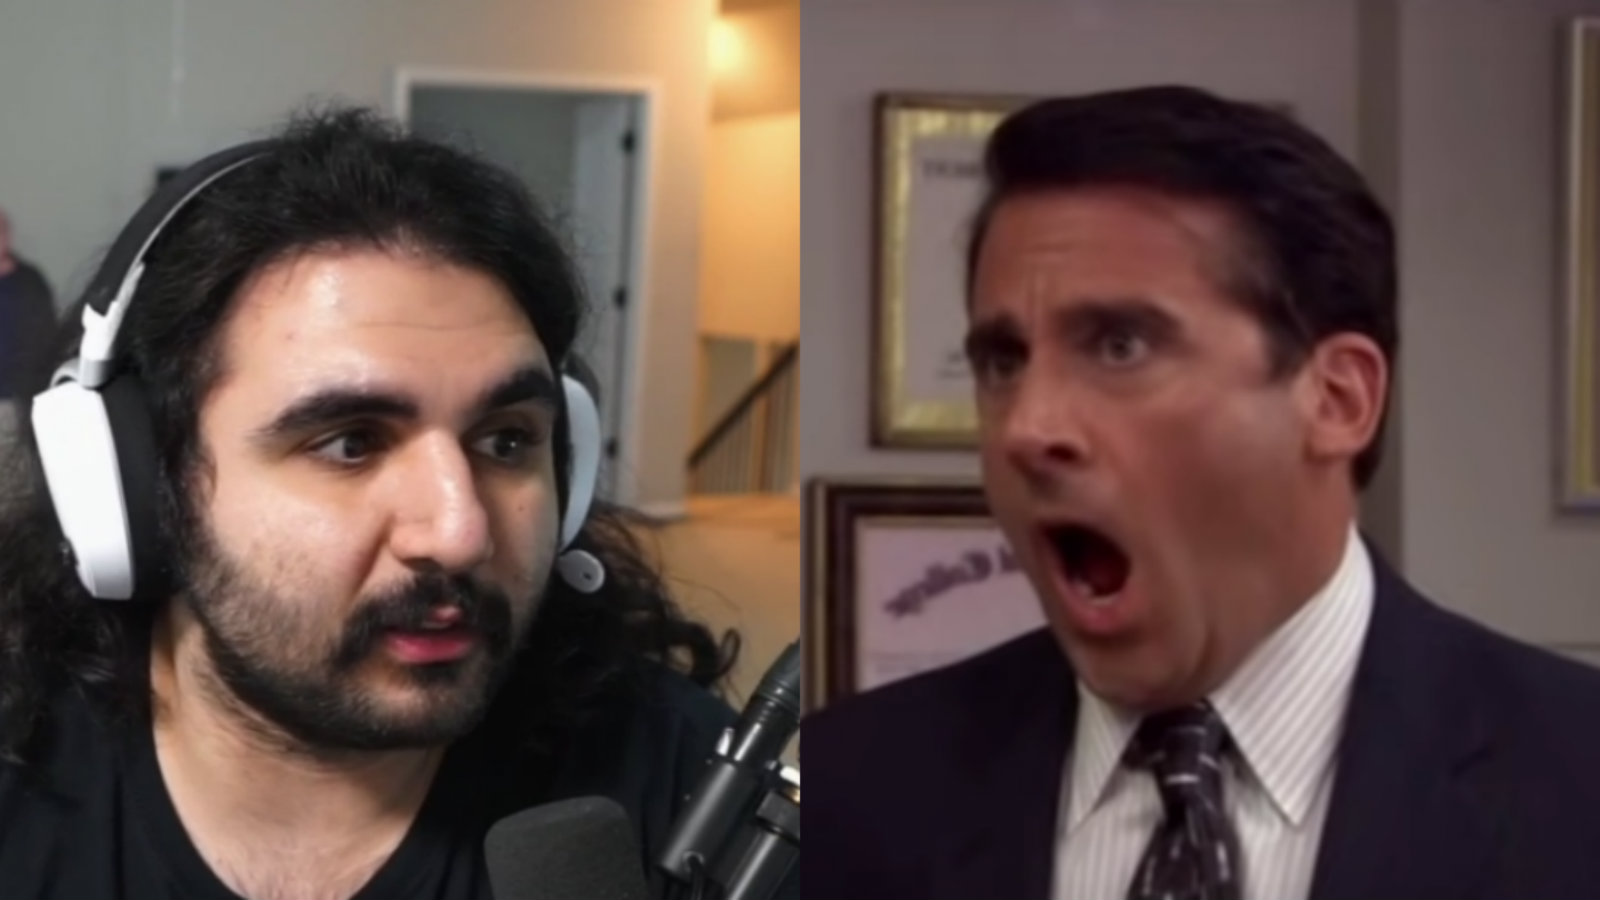 Esfand and Michael Scott from The Office